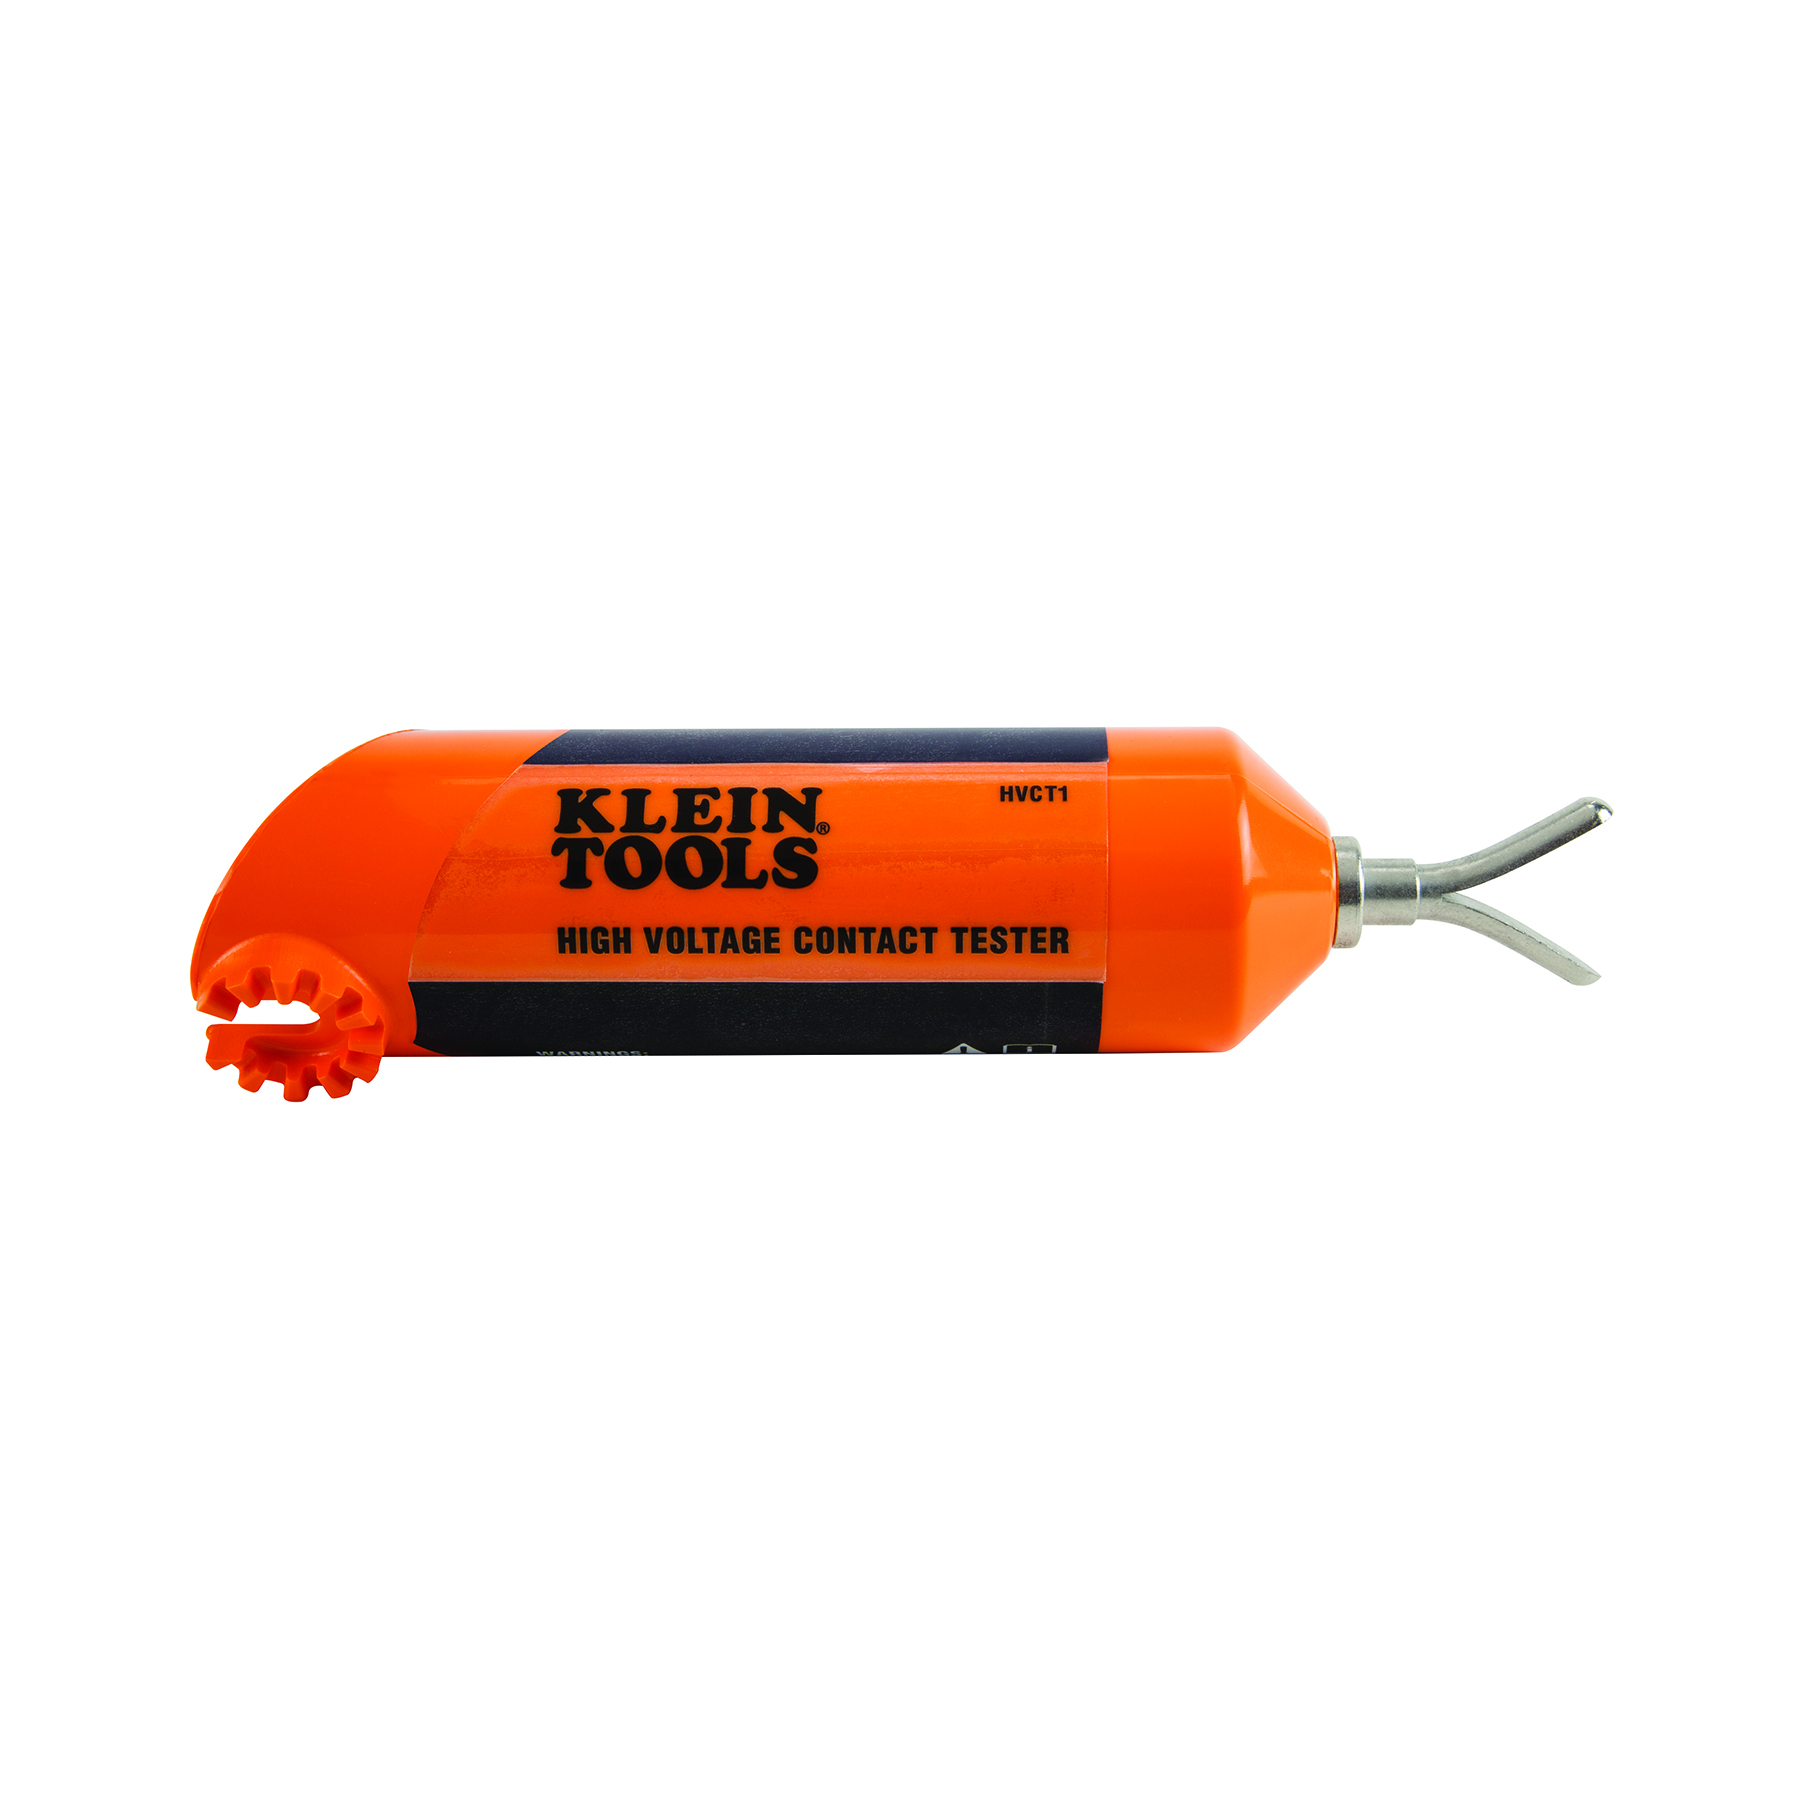 High Voltage Contact Tester - HVCT-1 | Klein Tools - For Professionals since 1857